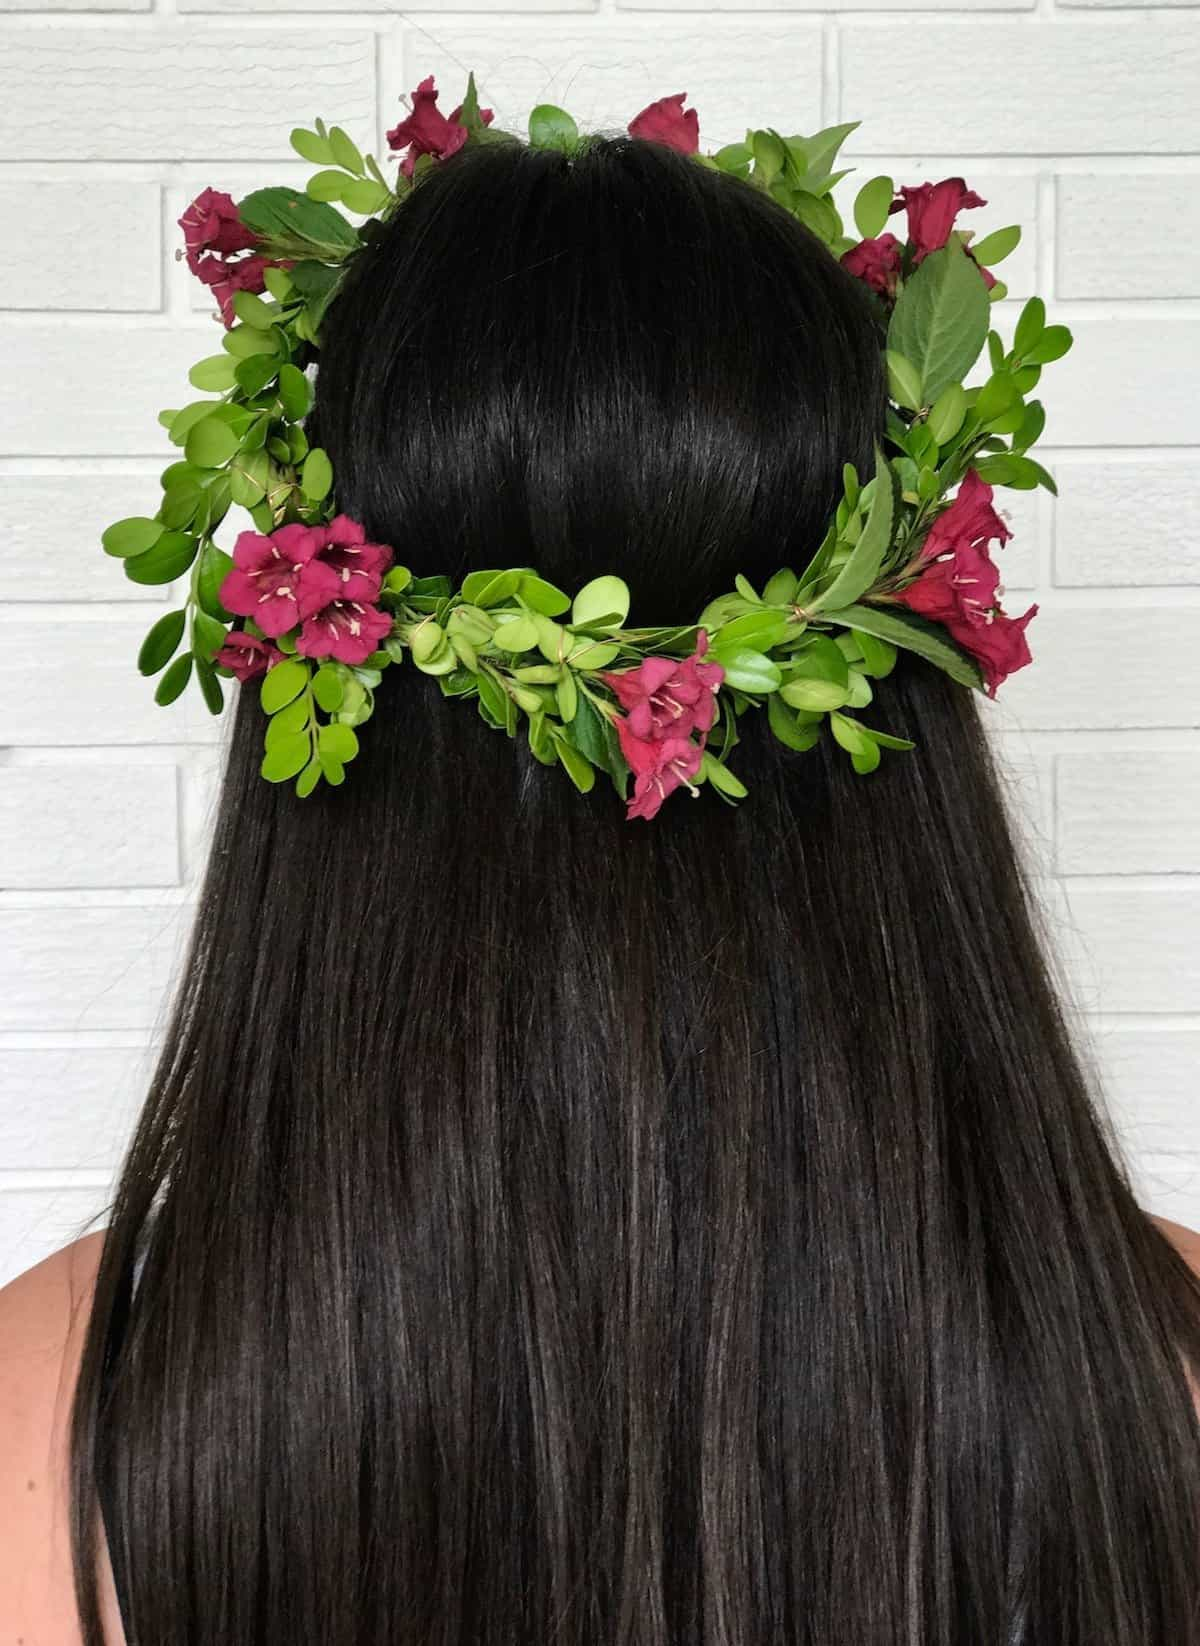 How to make a flower crown with real flowers home for the harvest izmirmasajfo